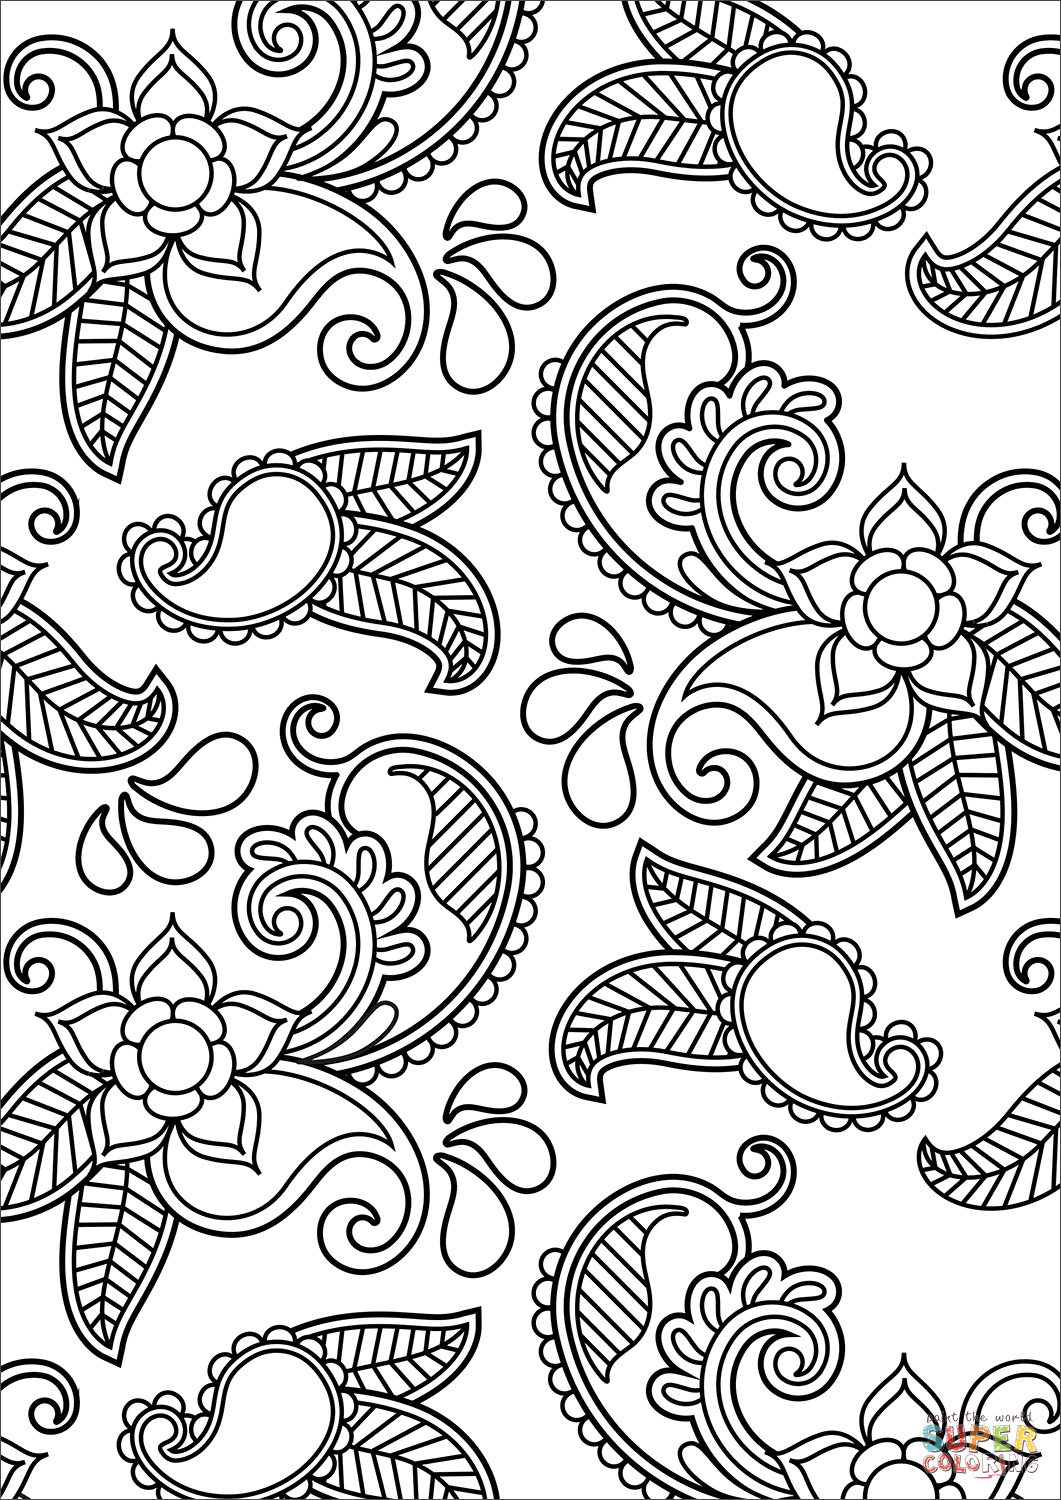 coloring pattern pages flower pattern coloring page free printable coloring pages pattern coloring pages